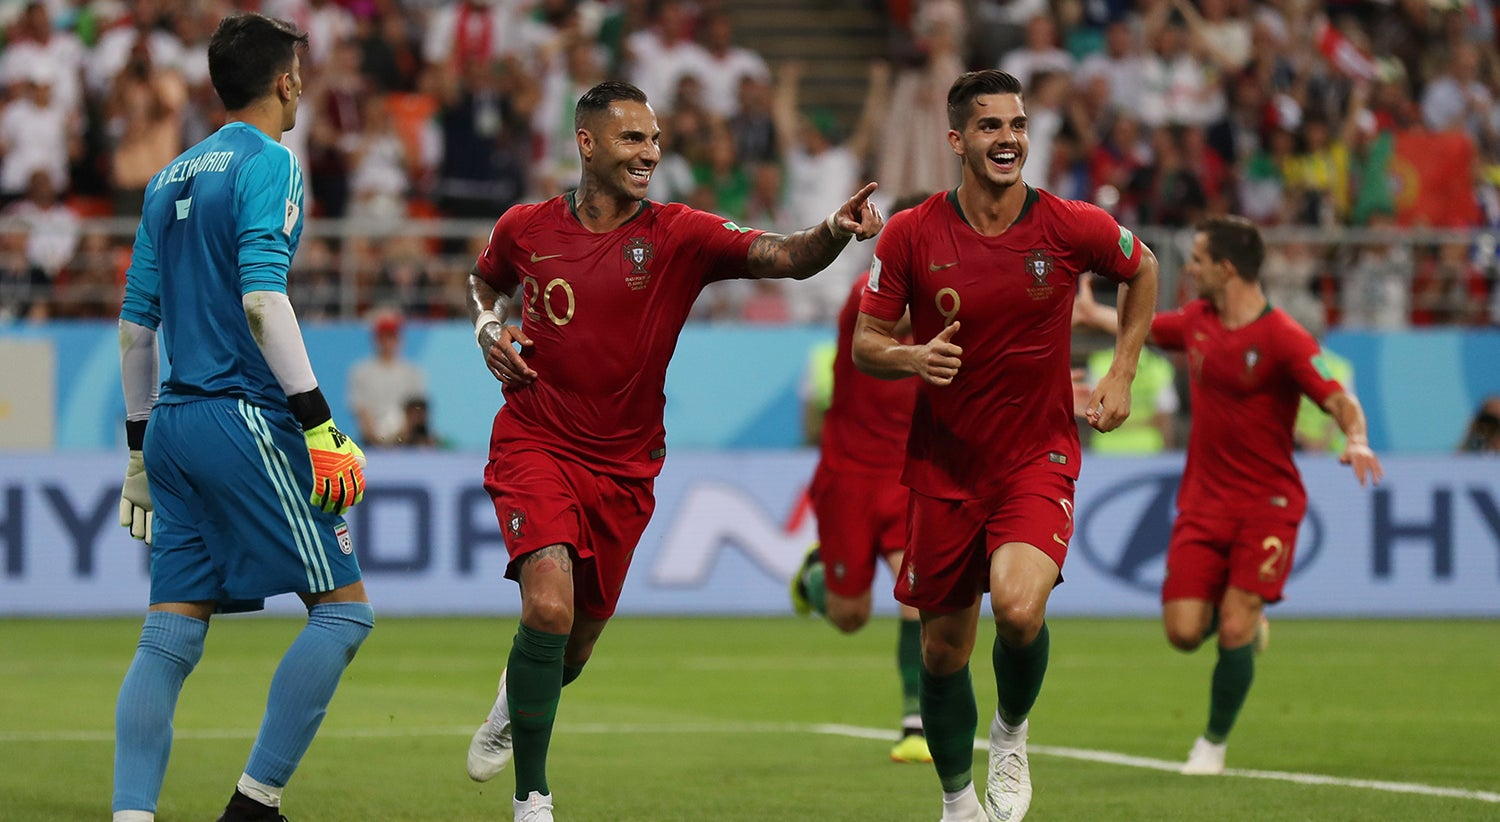 Portugal nos oitavos de final